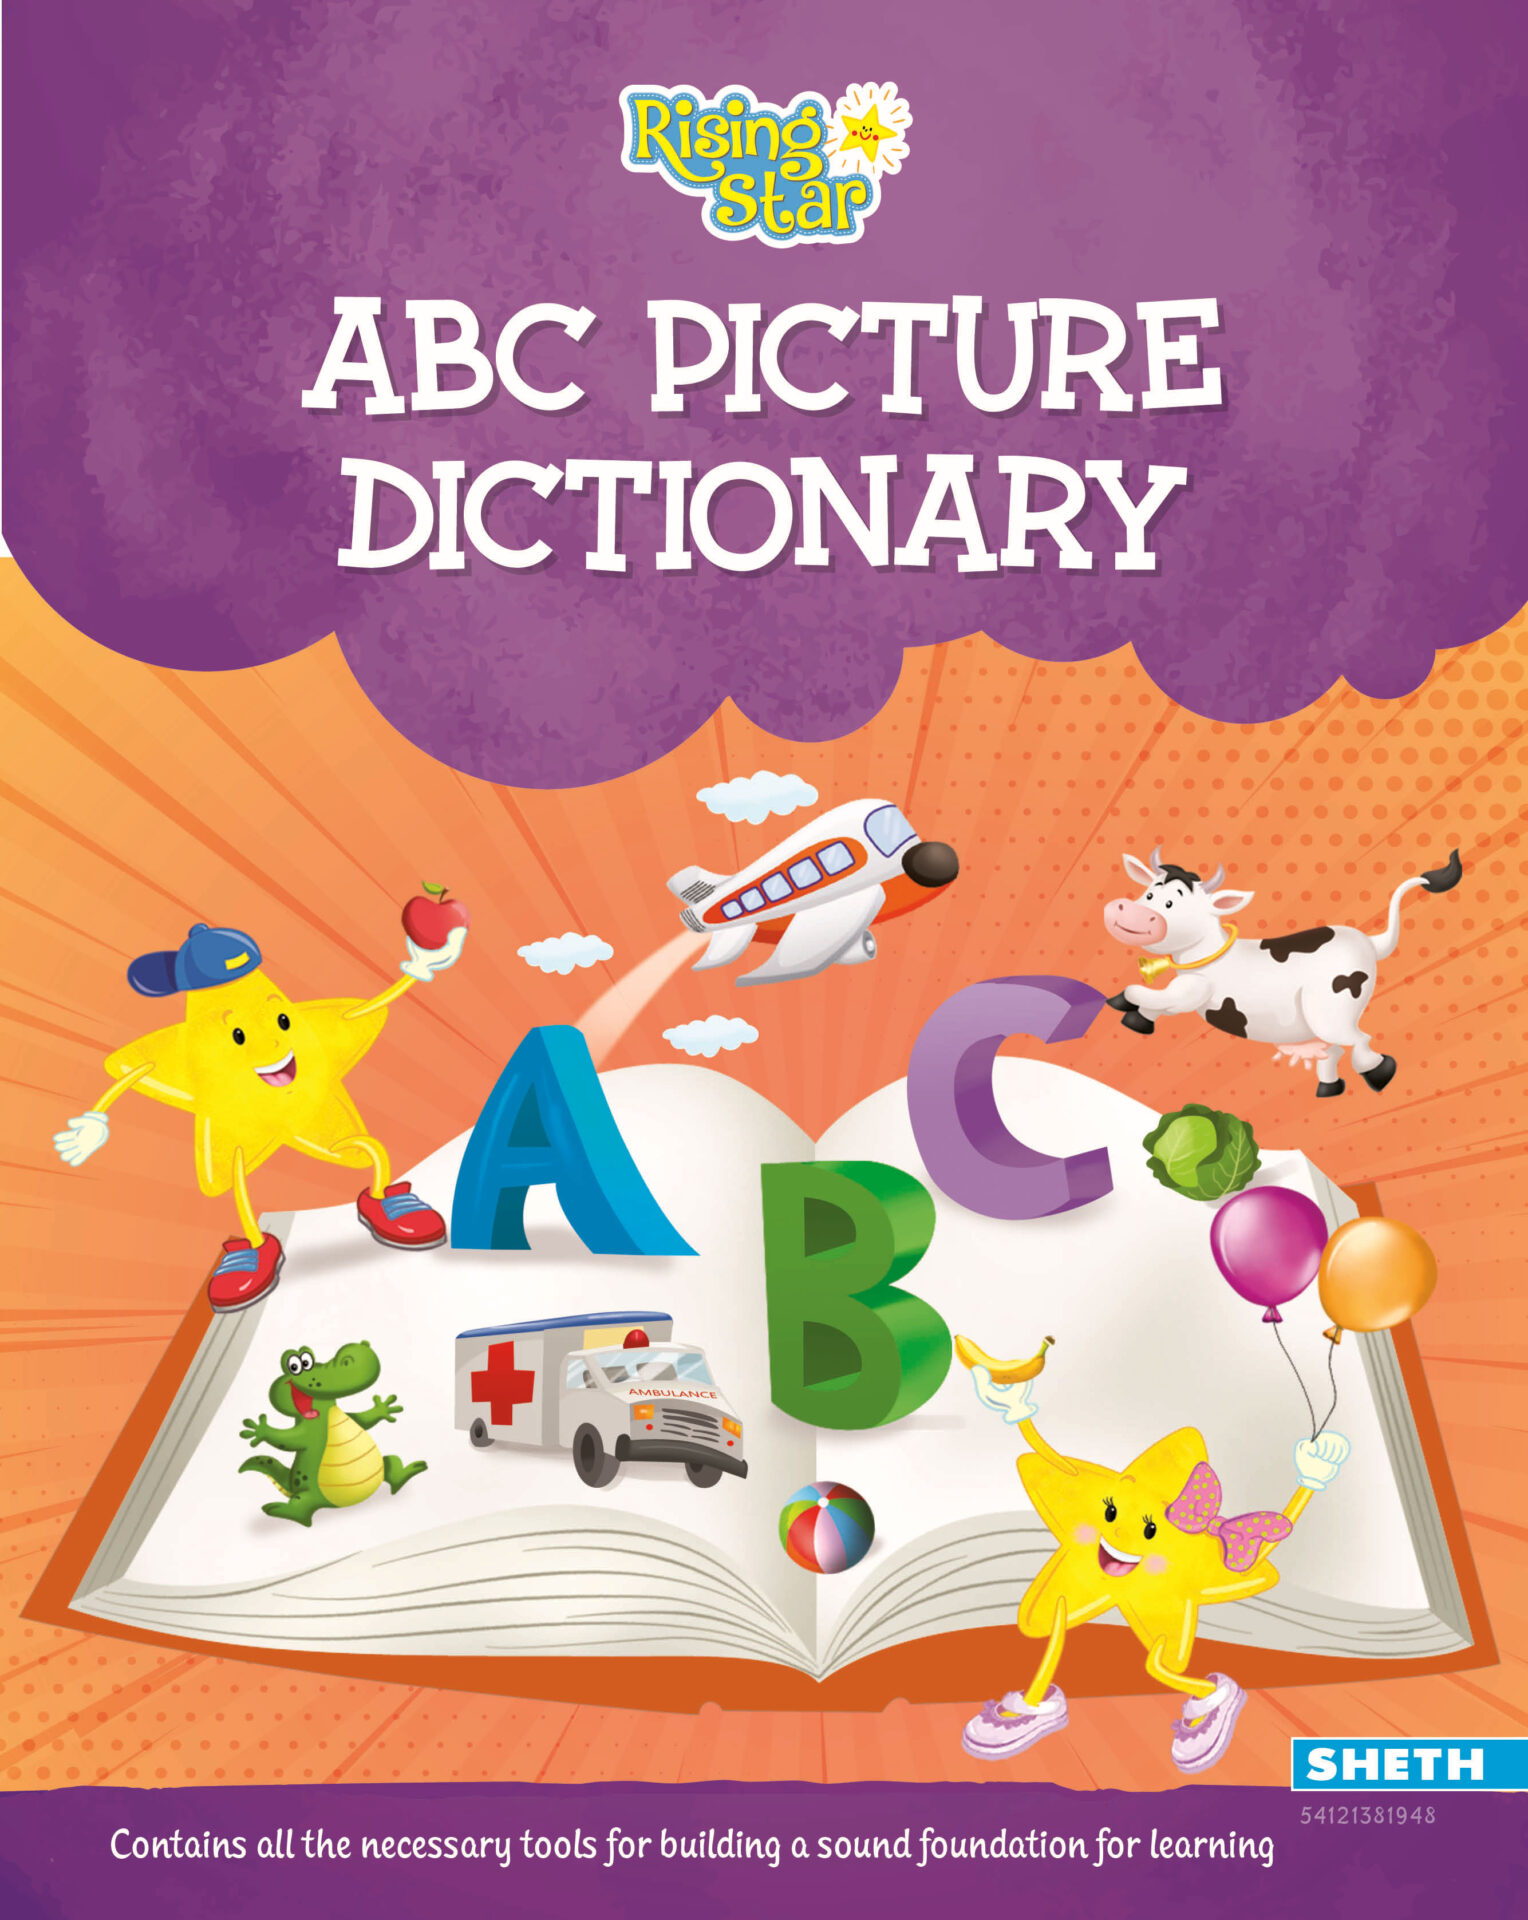 Rising Star ABC Picture Dictionary 01 1